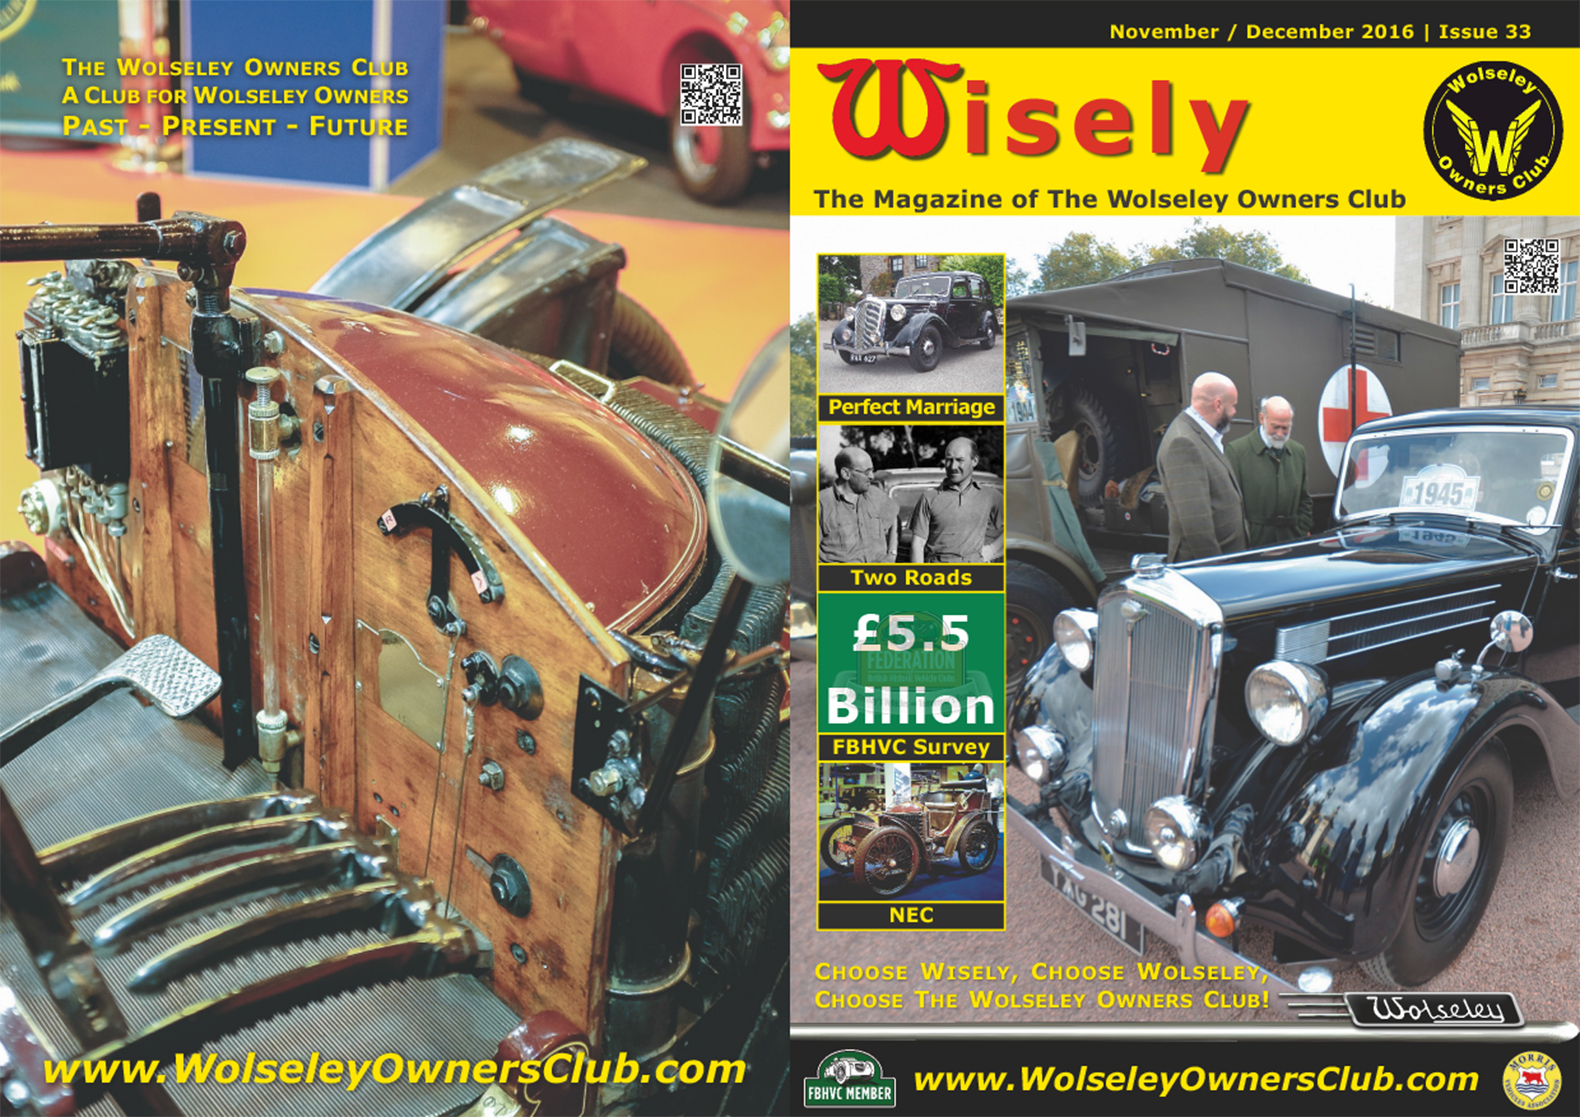 Wisely Issue 33